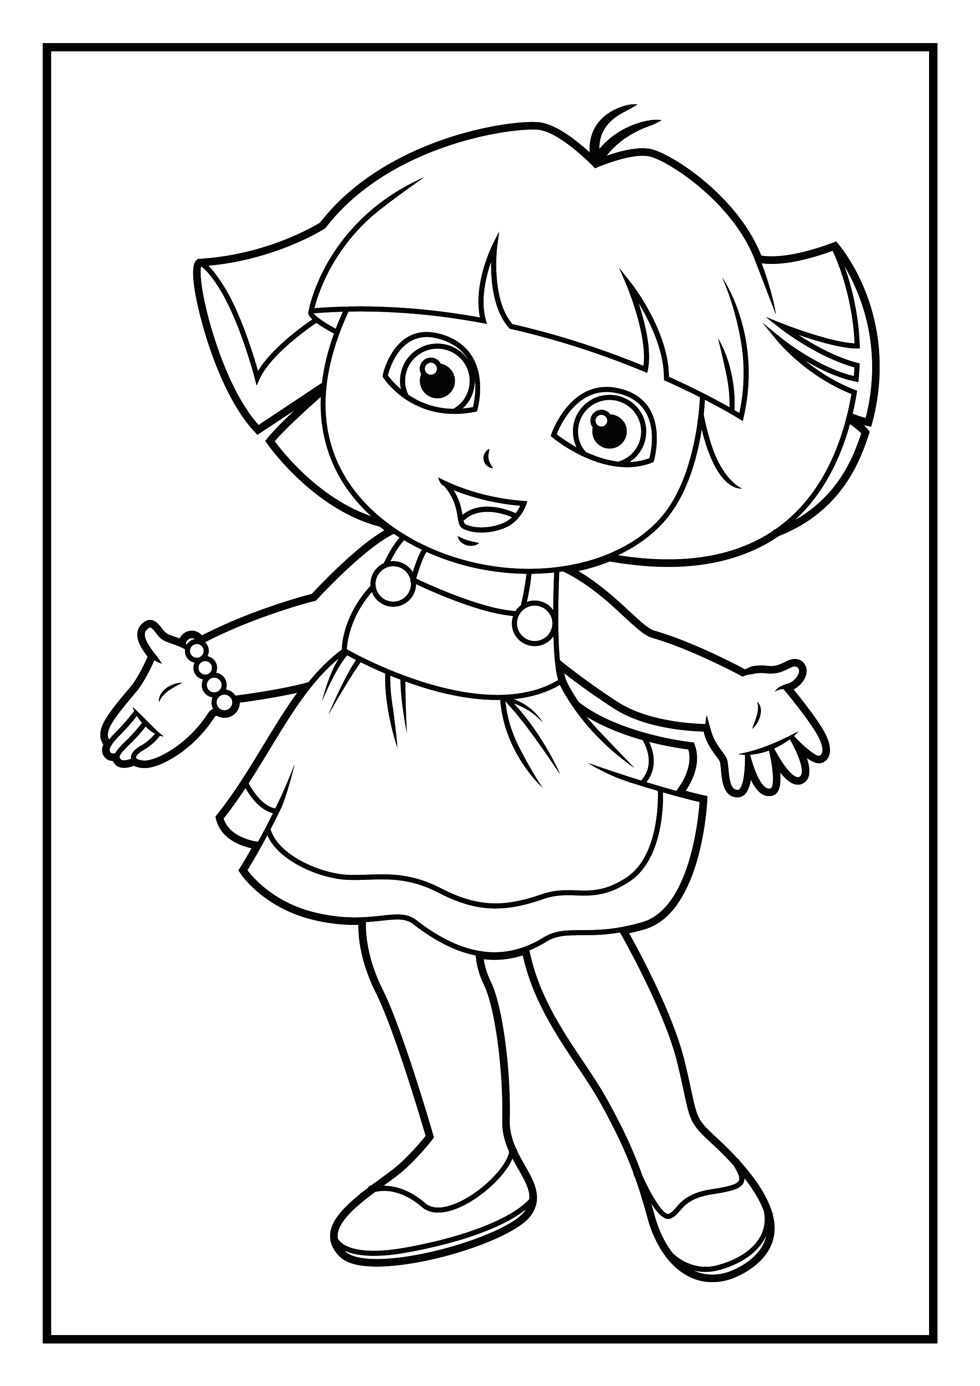 pictures of dora to color dora the explorer coloring page online coloring library pictures color to dora of